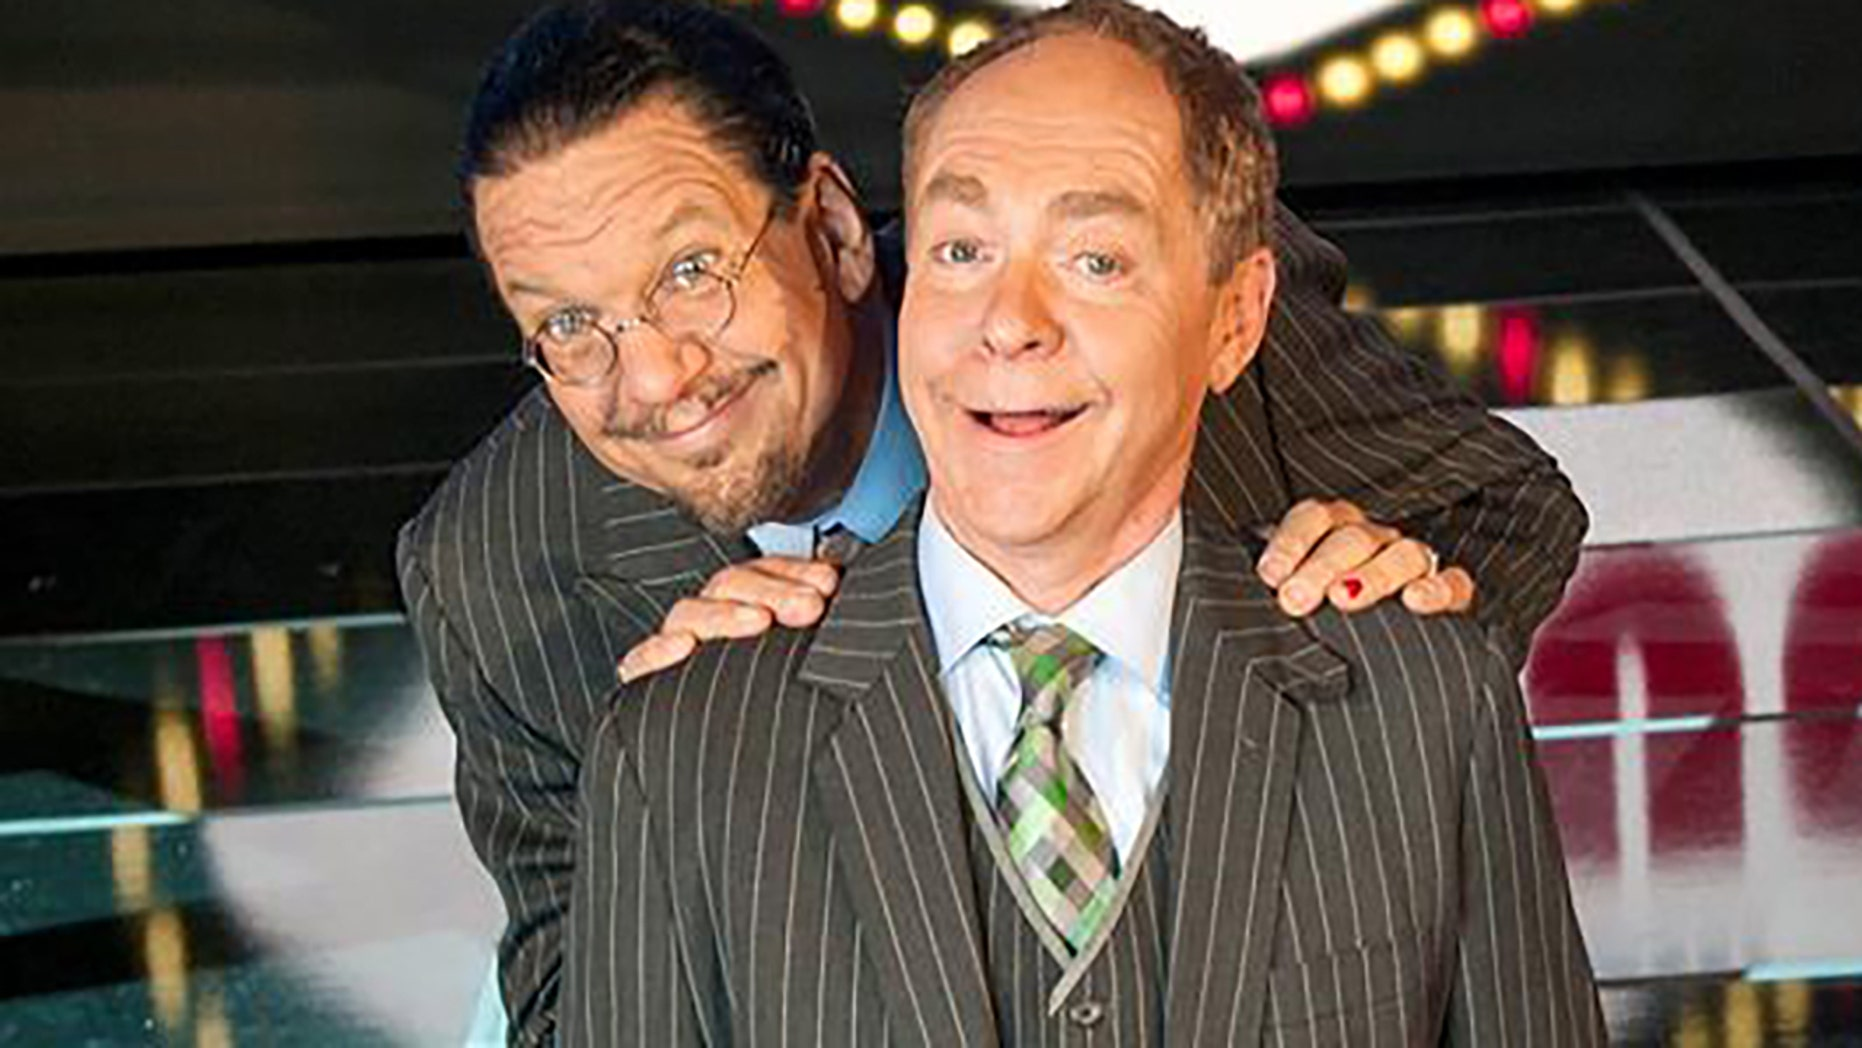 Penn & Teller say they plan to resume performances in August.